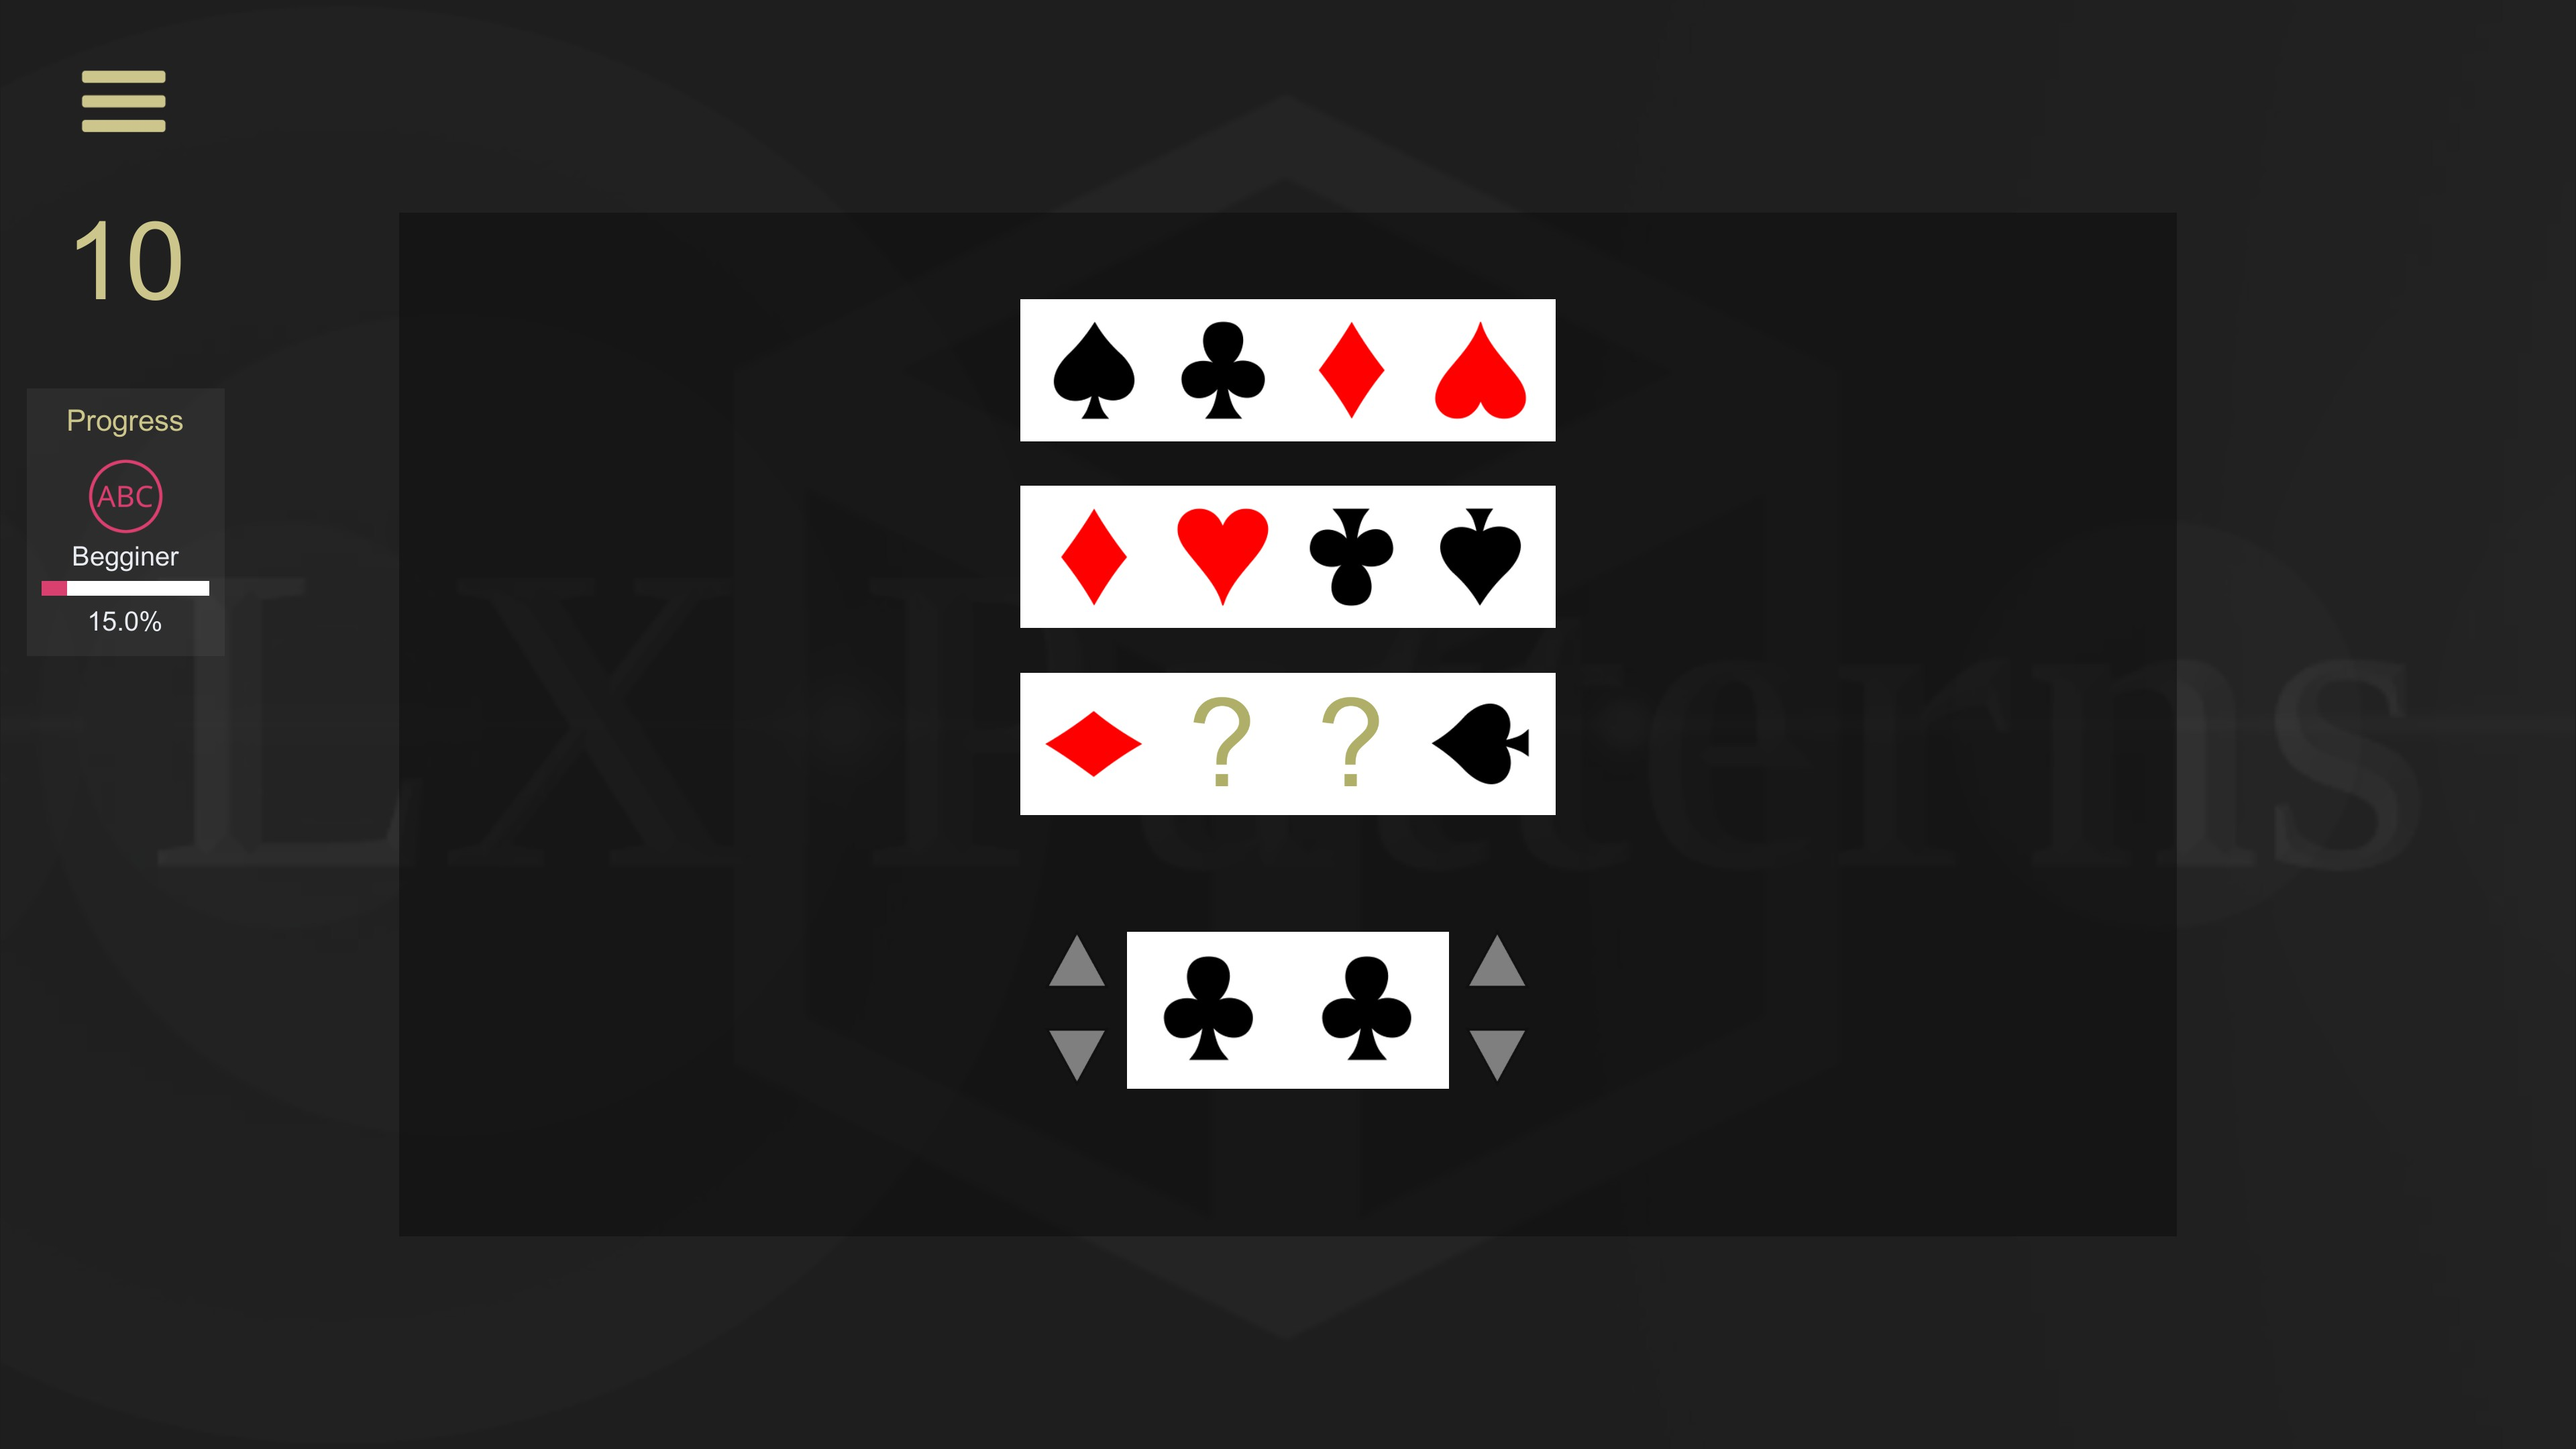 LX Patterns. Level 10 beginner puzzle. 2 sets of card suits are shown with a 3rd partially filled in. Players must complete the 3rd set.